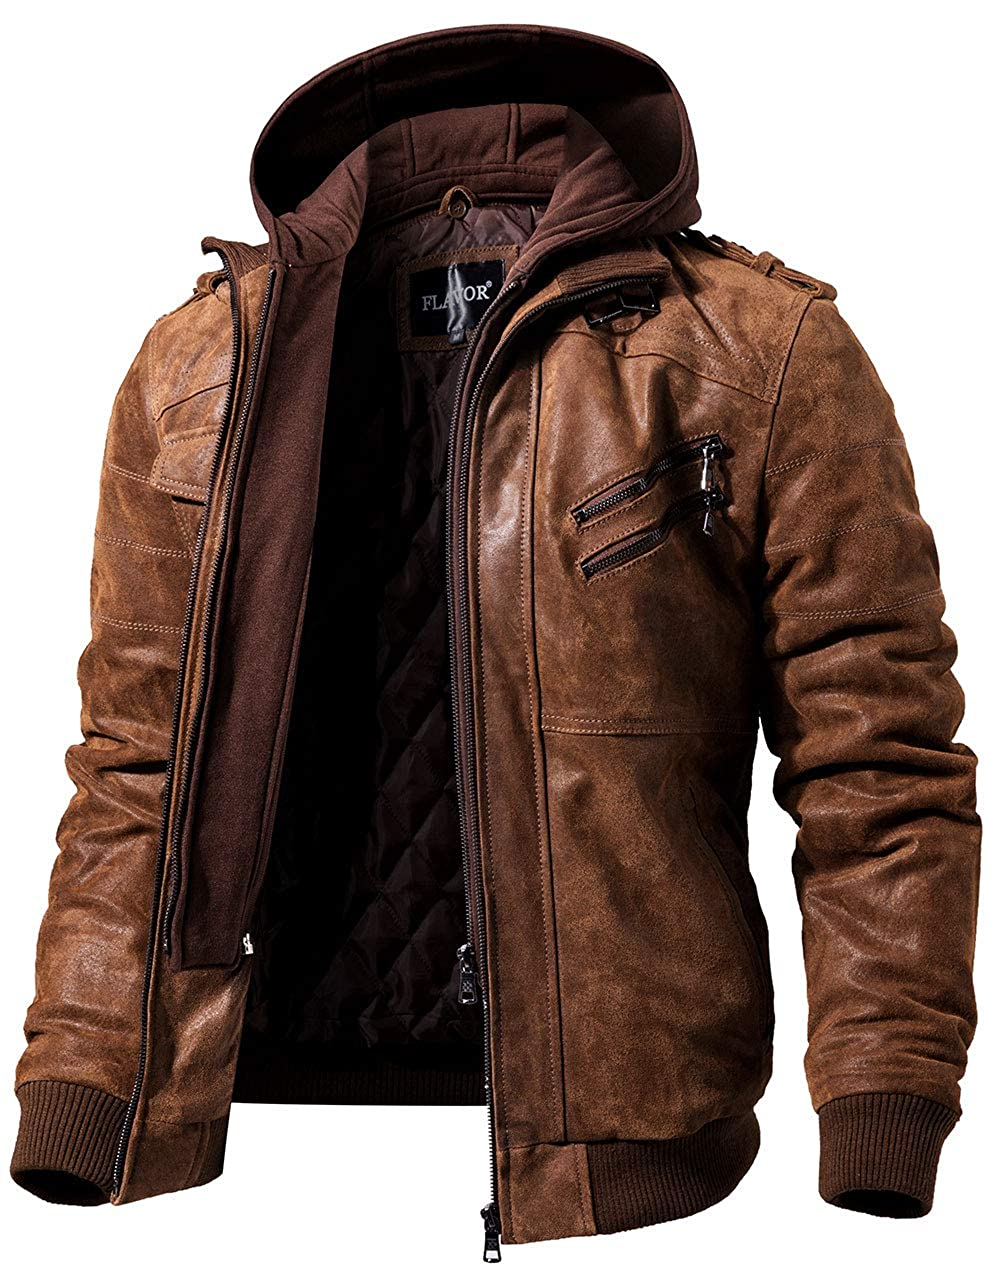 Men's Real Leather Jacket with Removable Hood Brown Genuine Leather